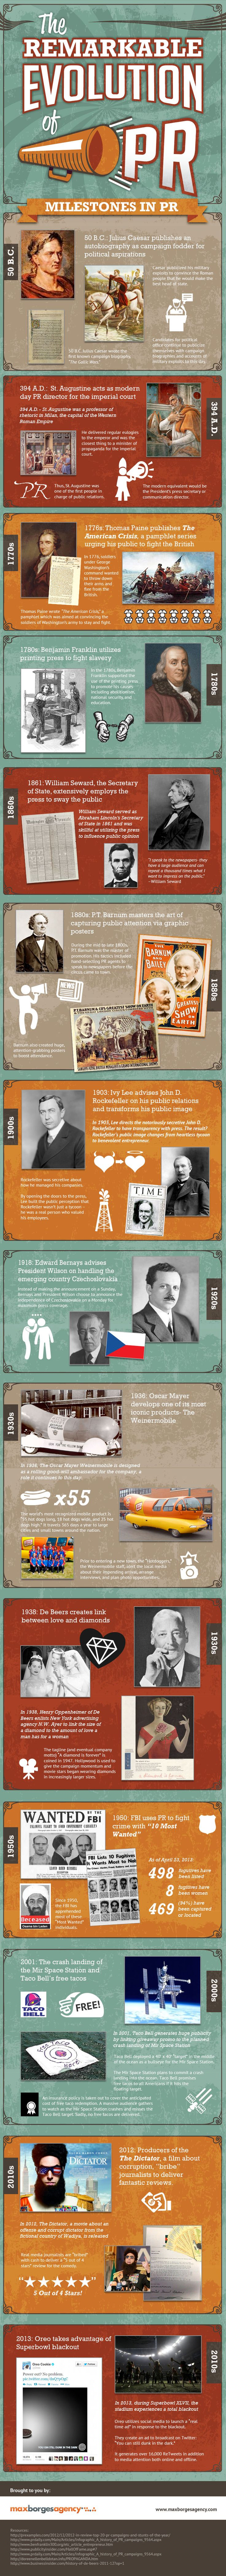 The Remarkable Evolution of PR - Infographic by Max Borges Agency